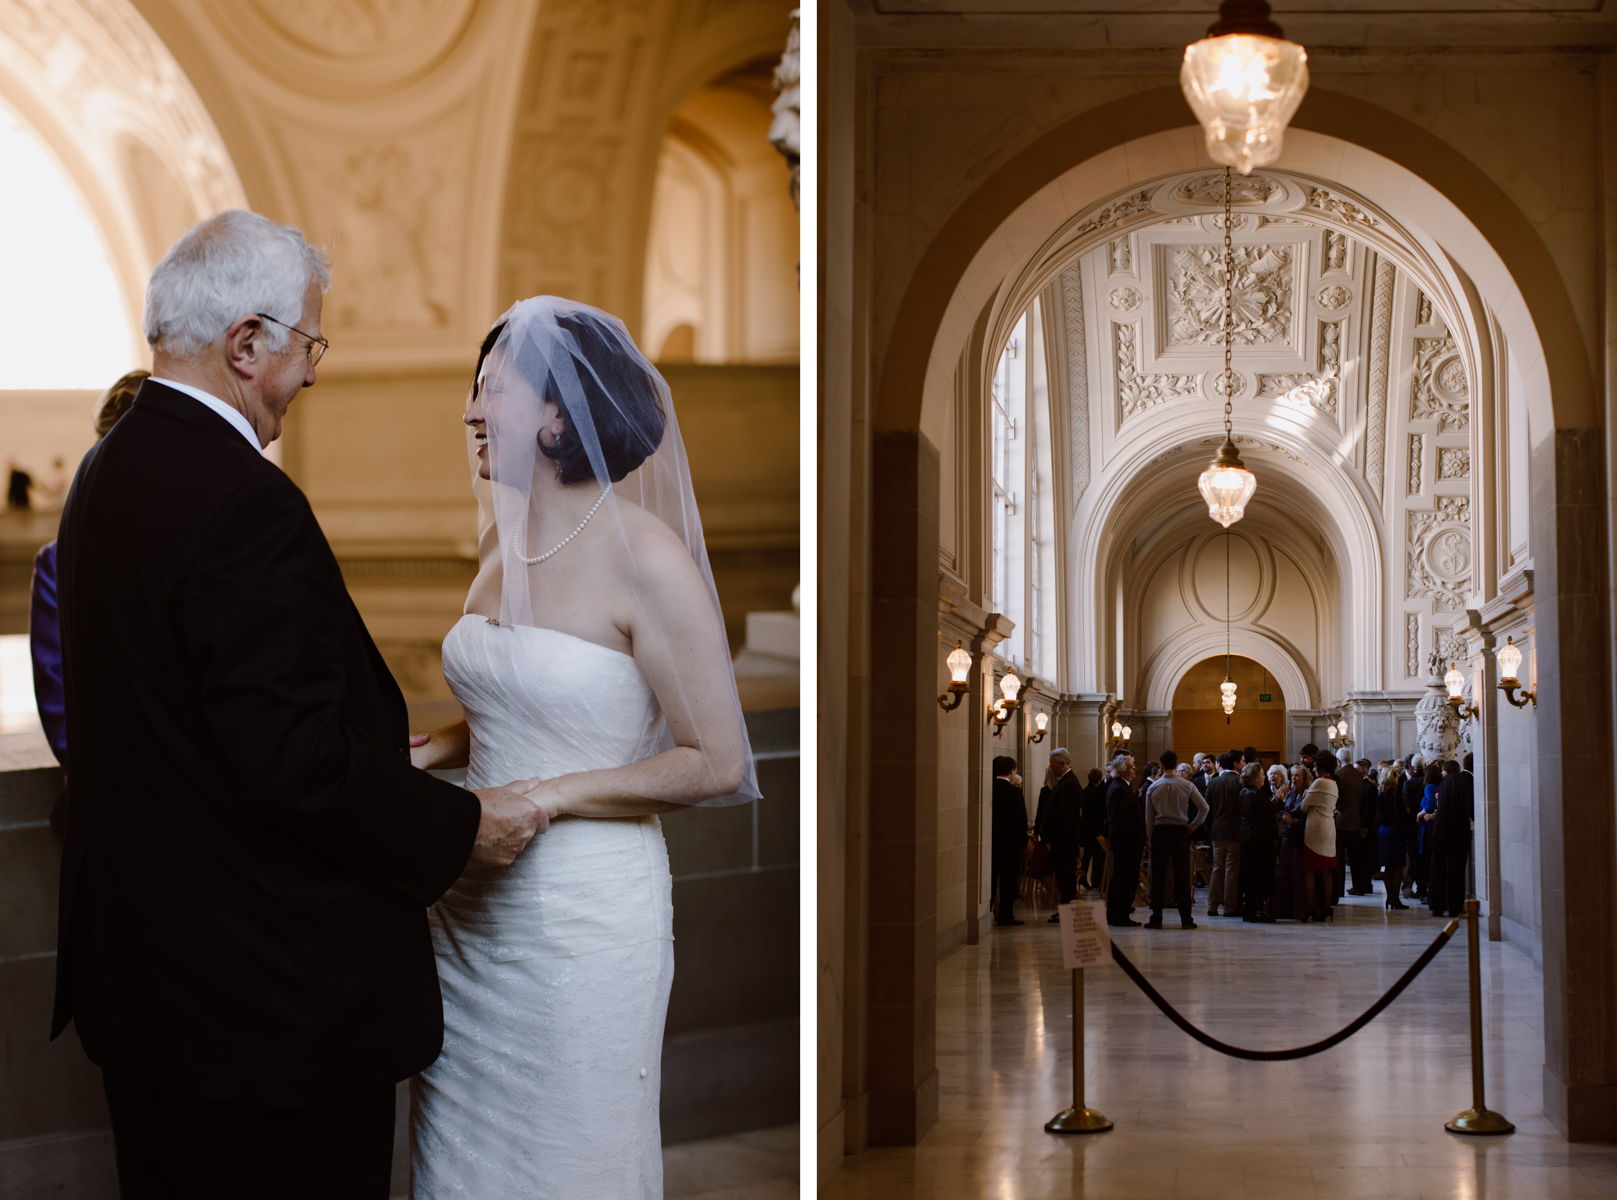 SF City Hall fourth floor wedding ceremony.